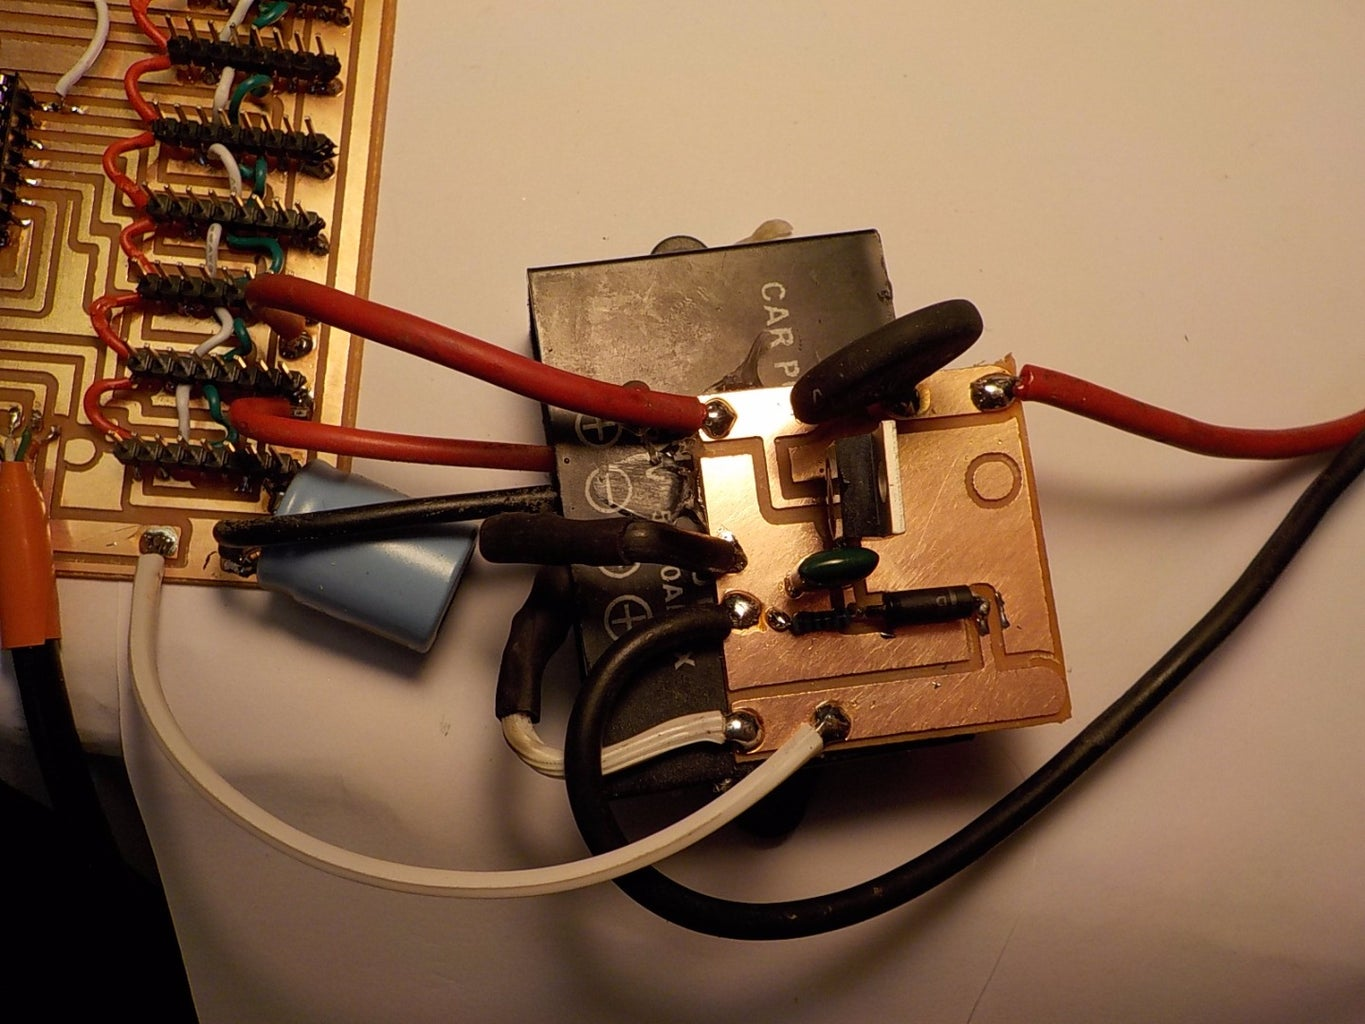 Over-voltage Protection